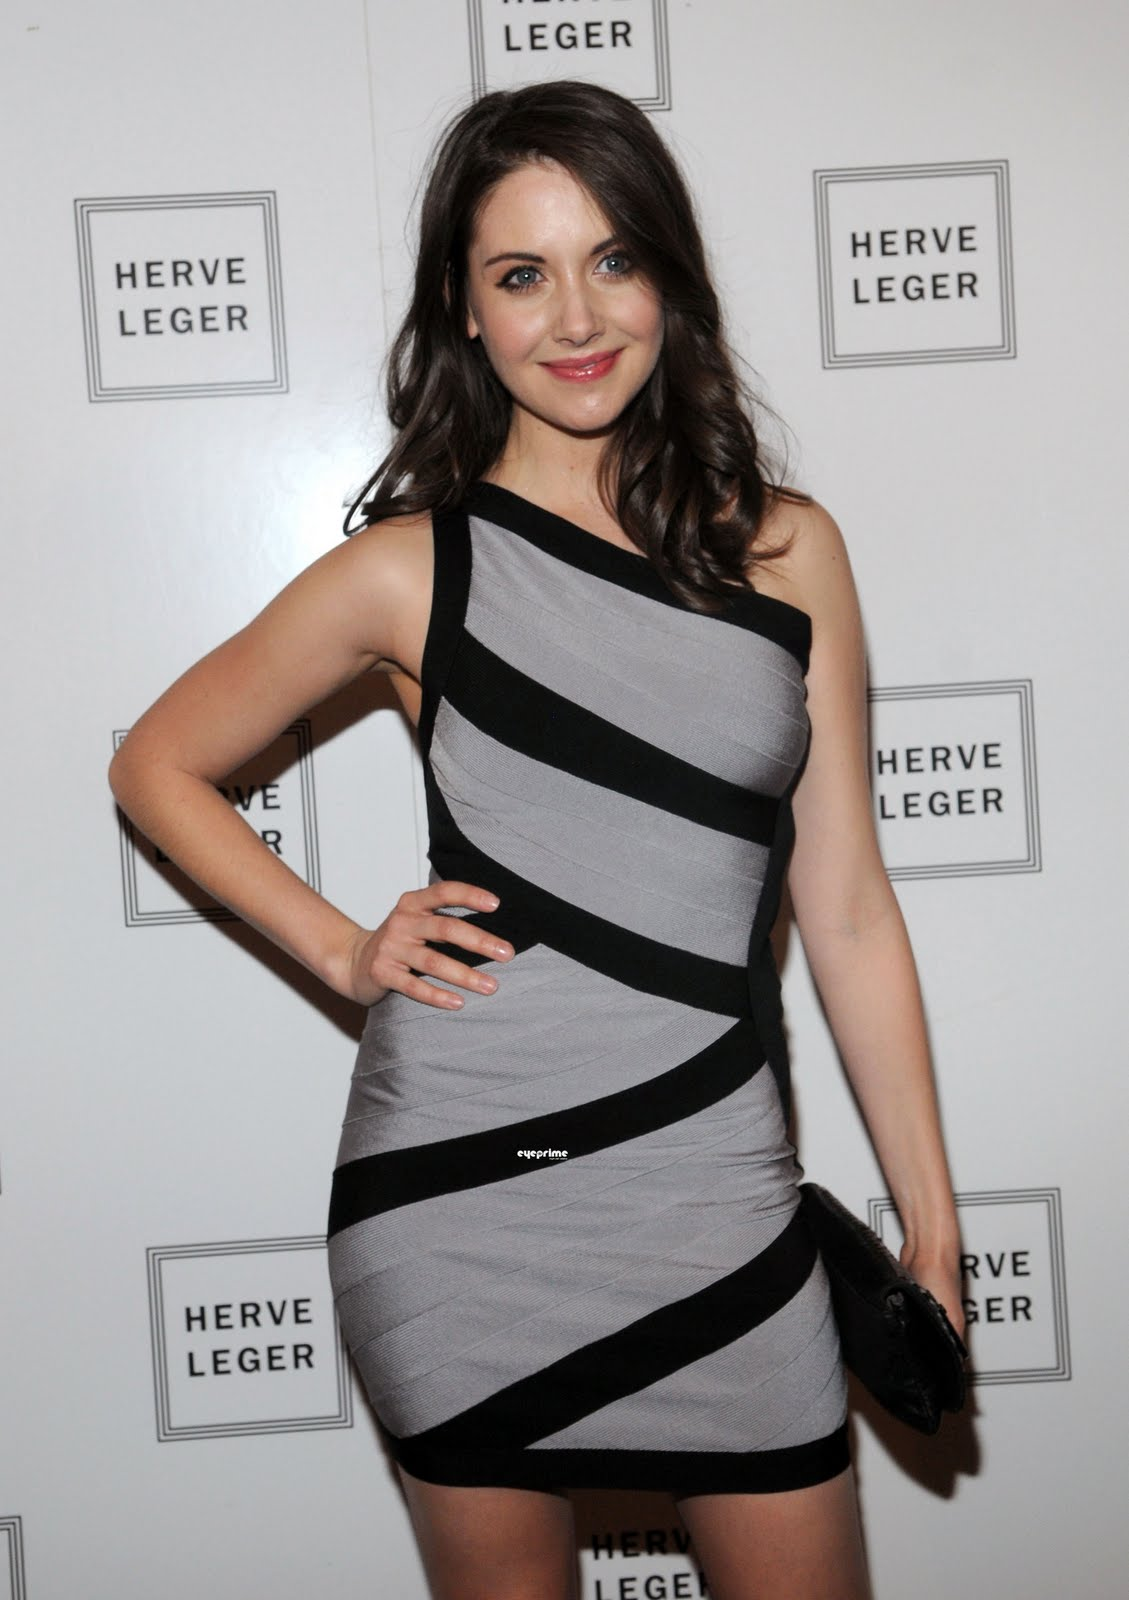 Alison Whitney wallpaper world: the herve leger show-alison brie sexy photo